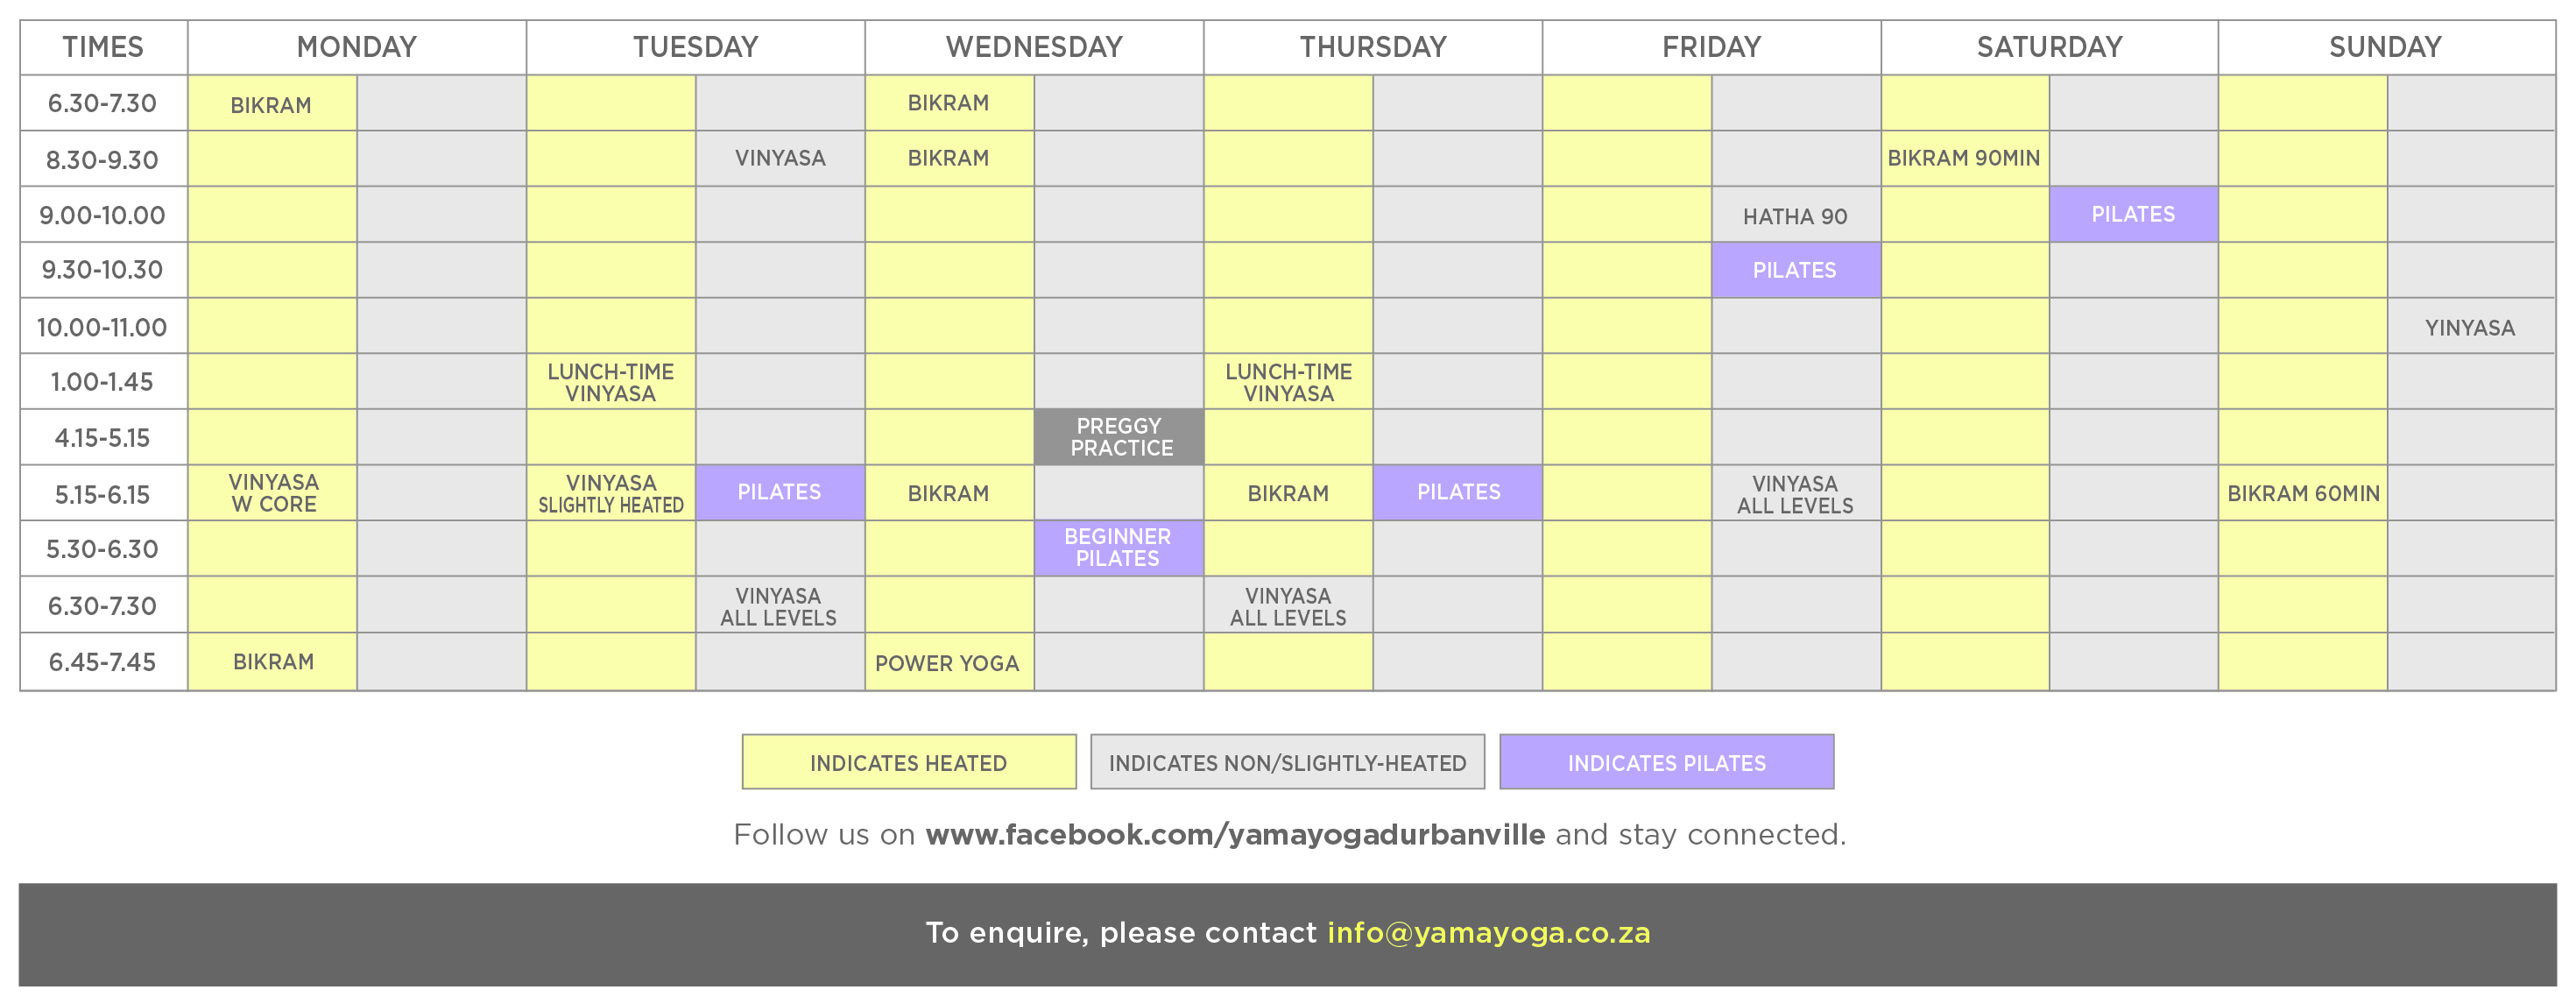 yama-yoga-schedule-feb-2019